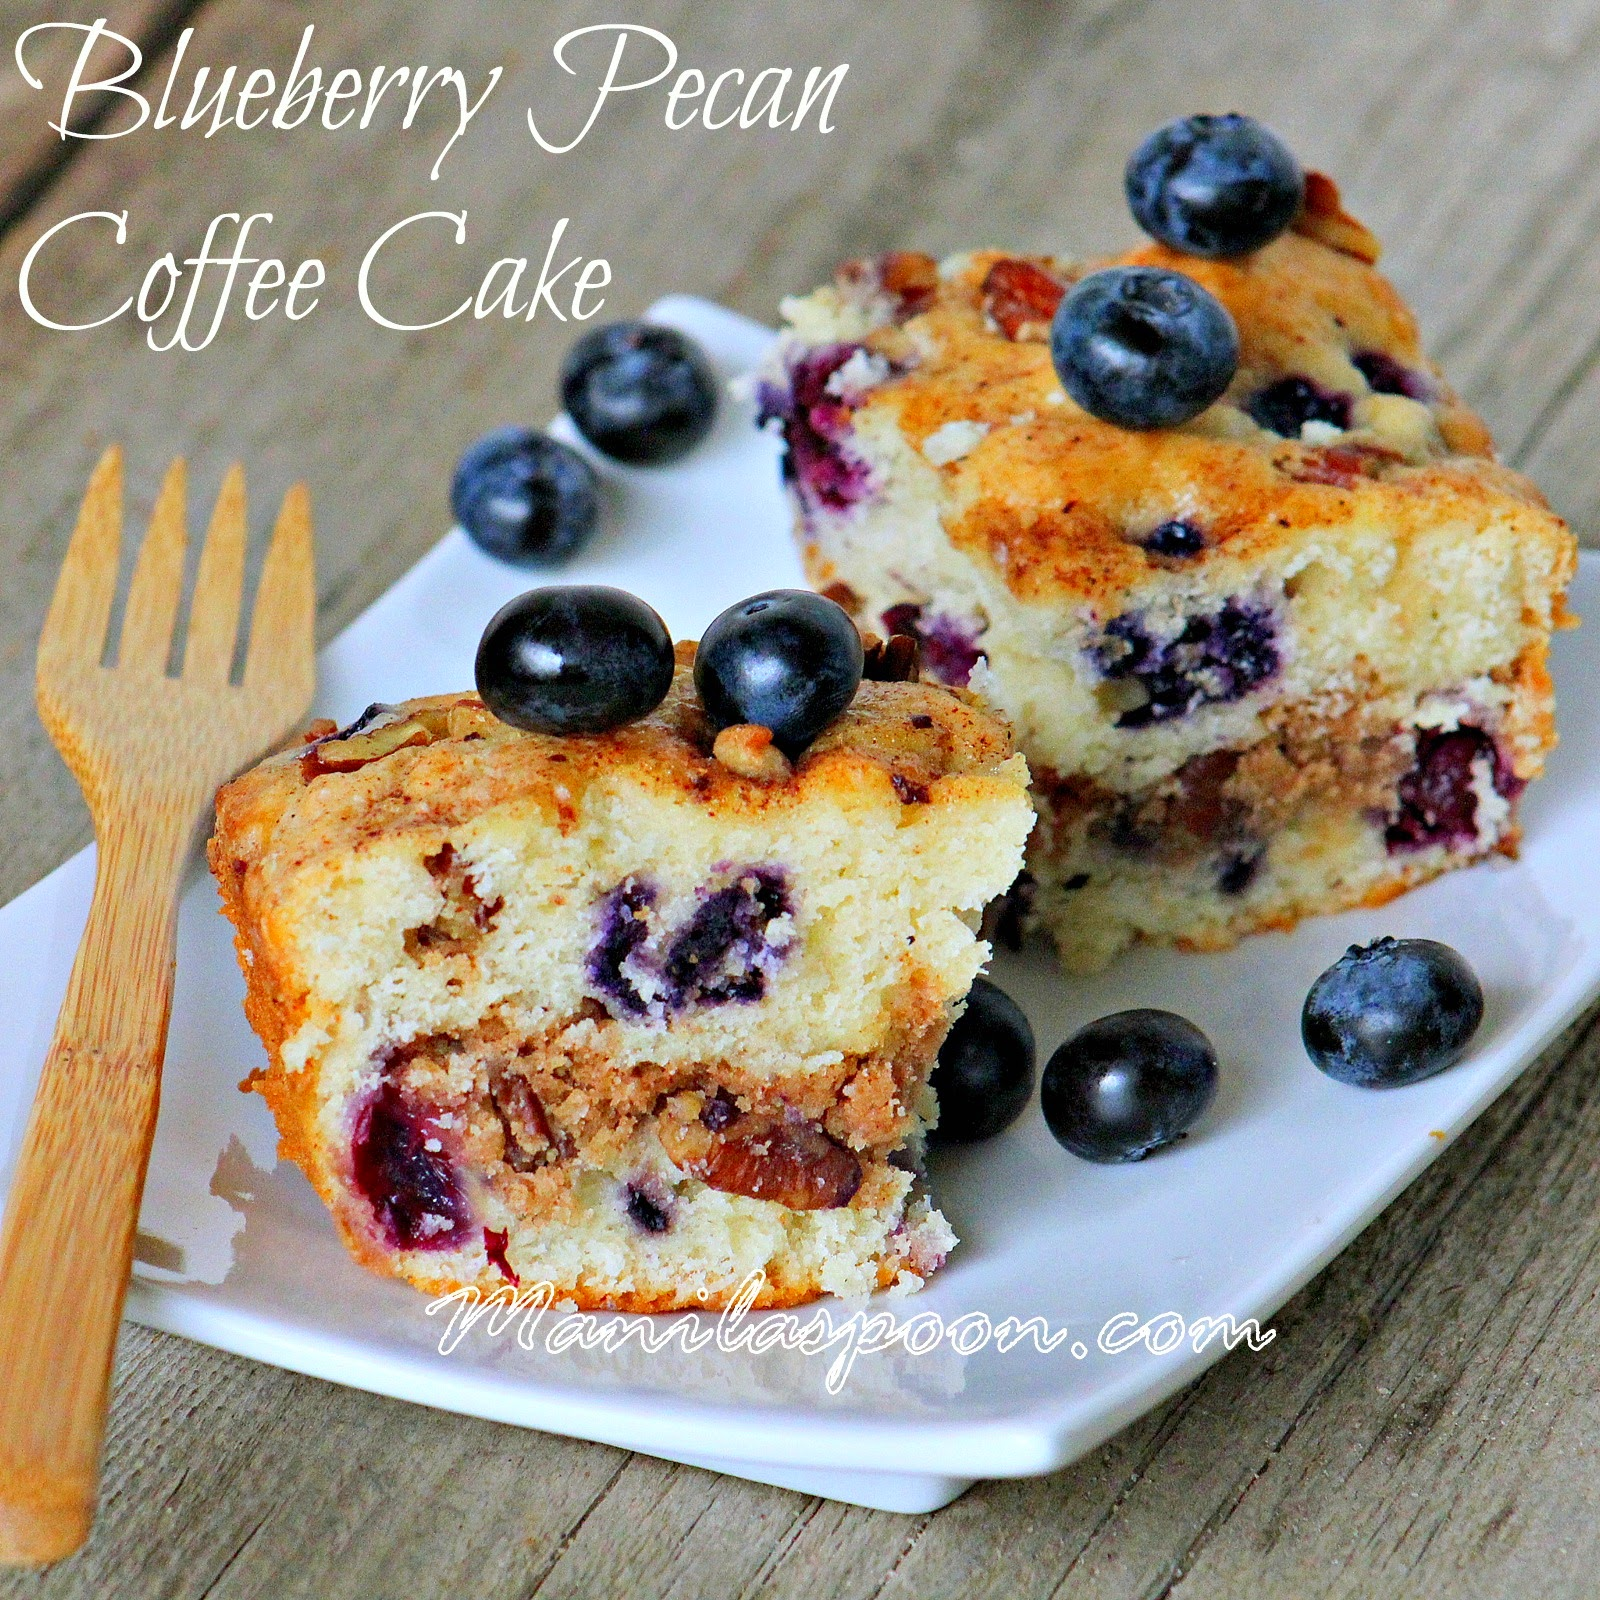 With juicy blueberries for extra sweetness and pecans for added crunch and flavor this is our ultimate breakfast and coffee cake. | manilaspoon.com